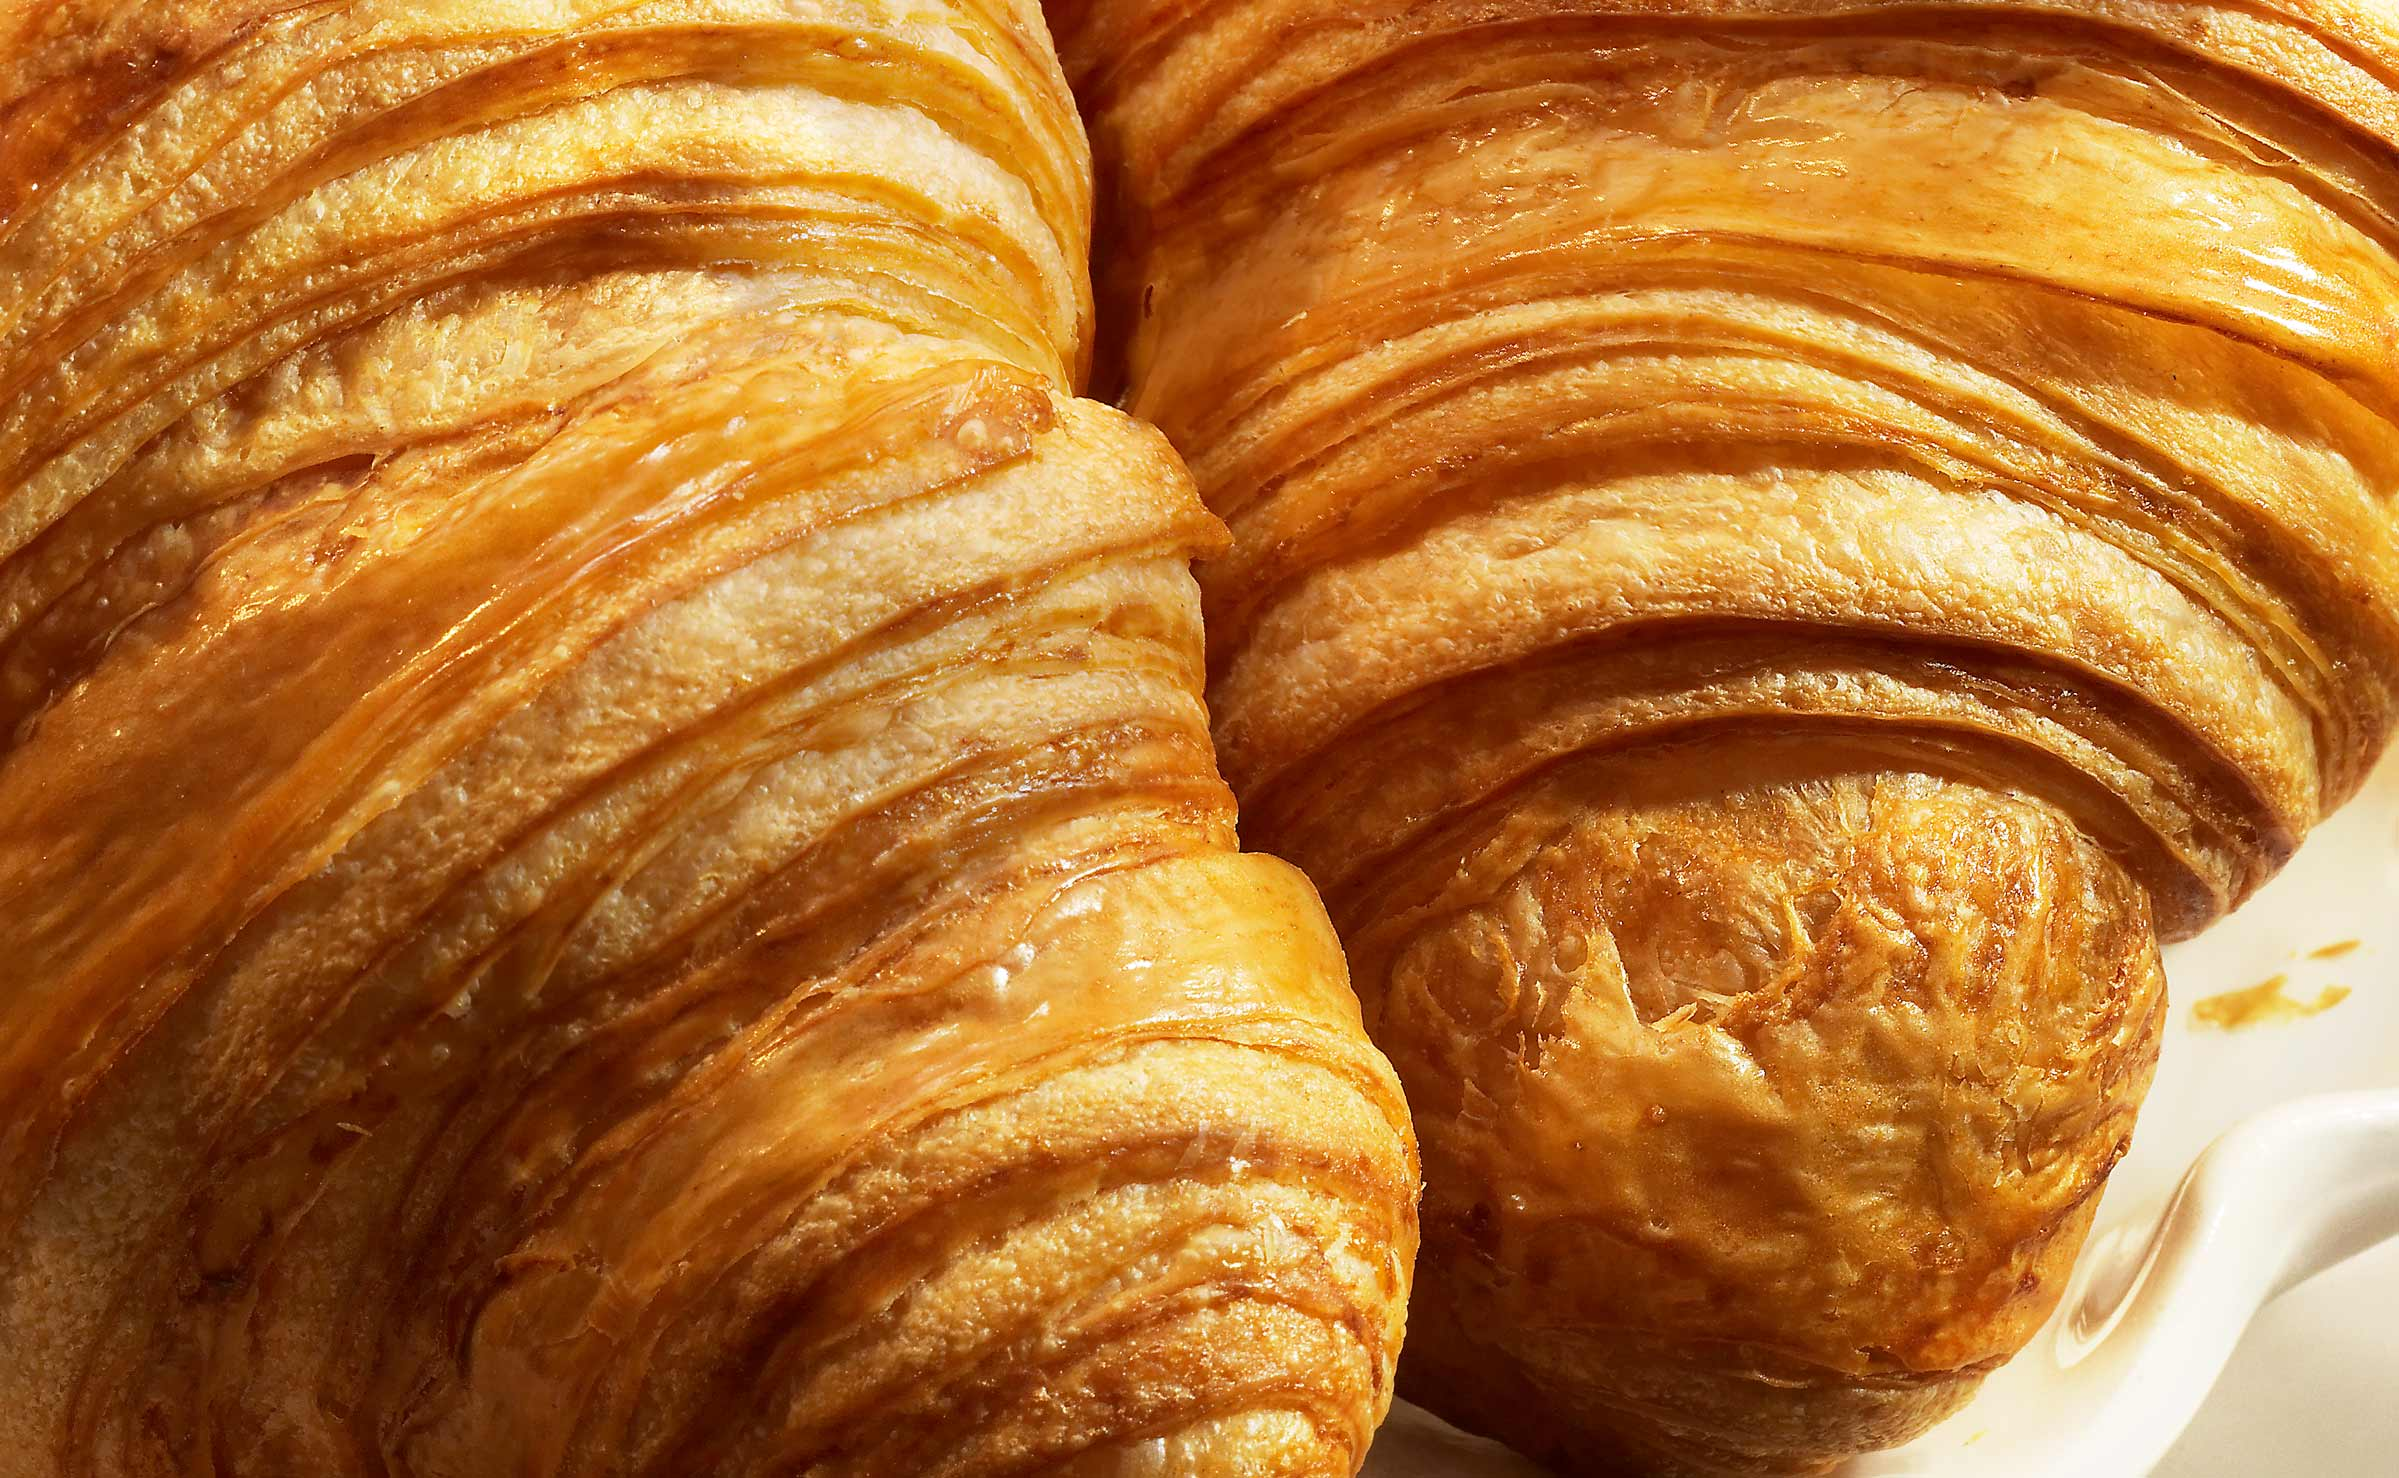 Glasshouse Assignment - David Bishop - Food Photography - Croissant